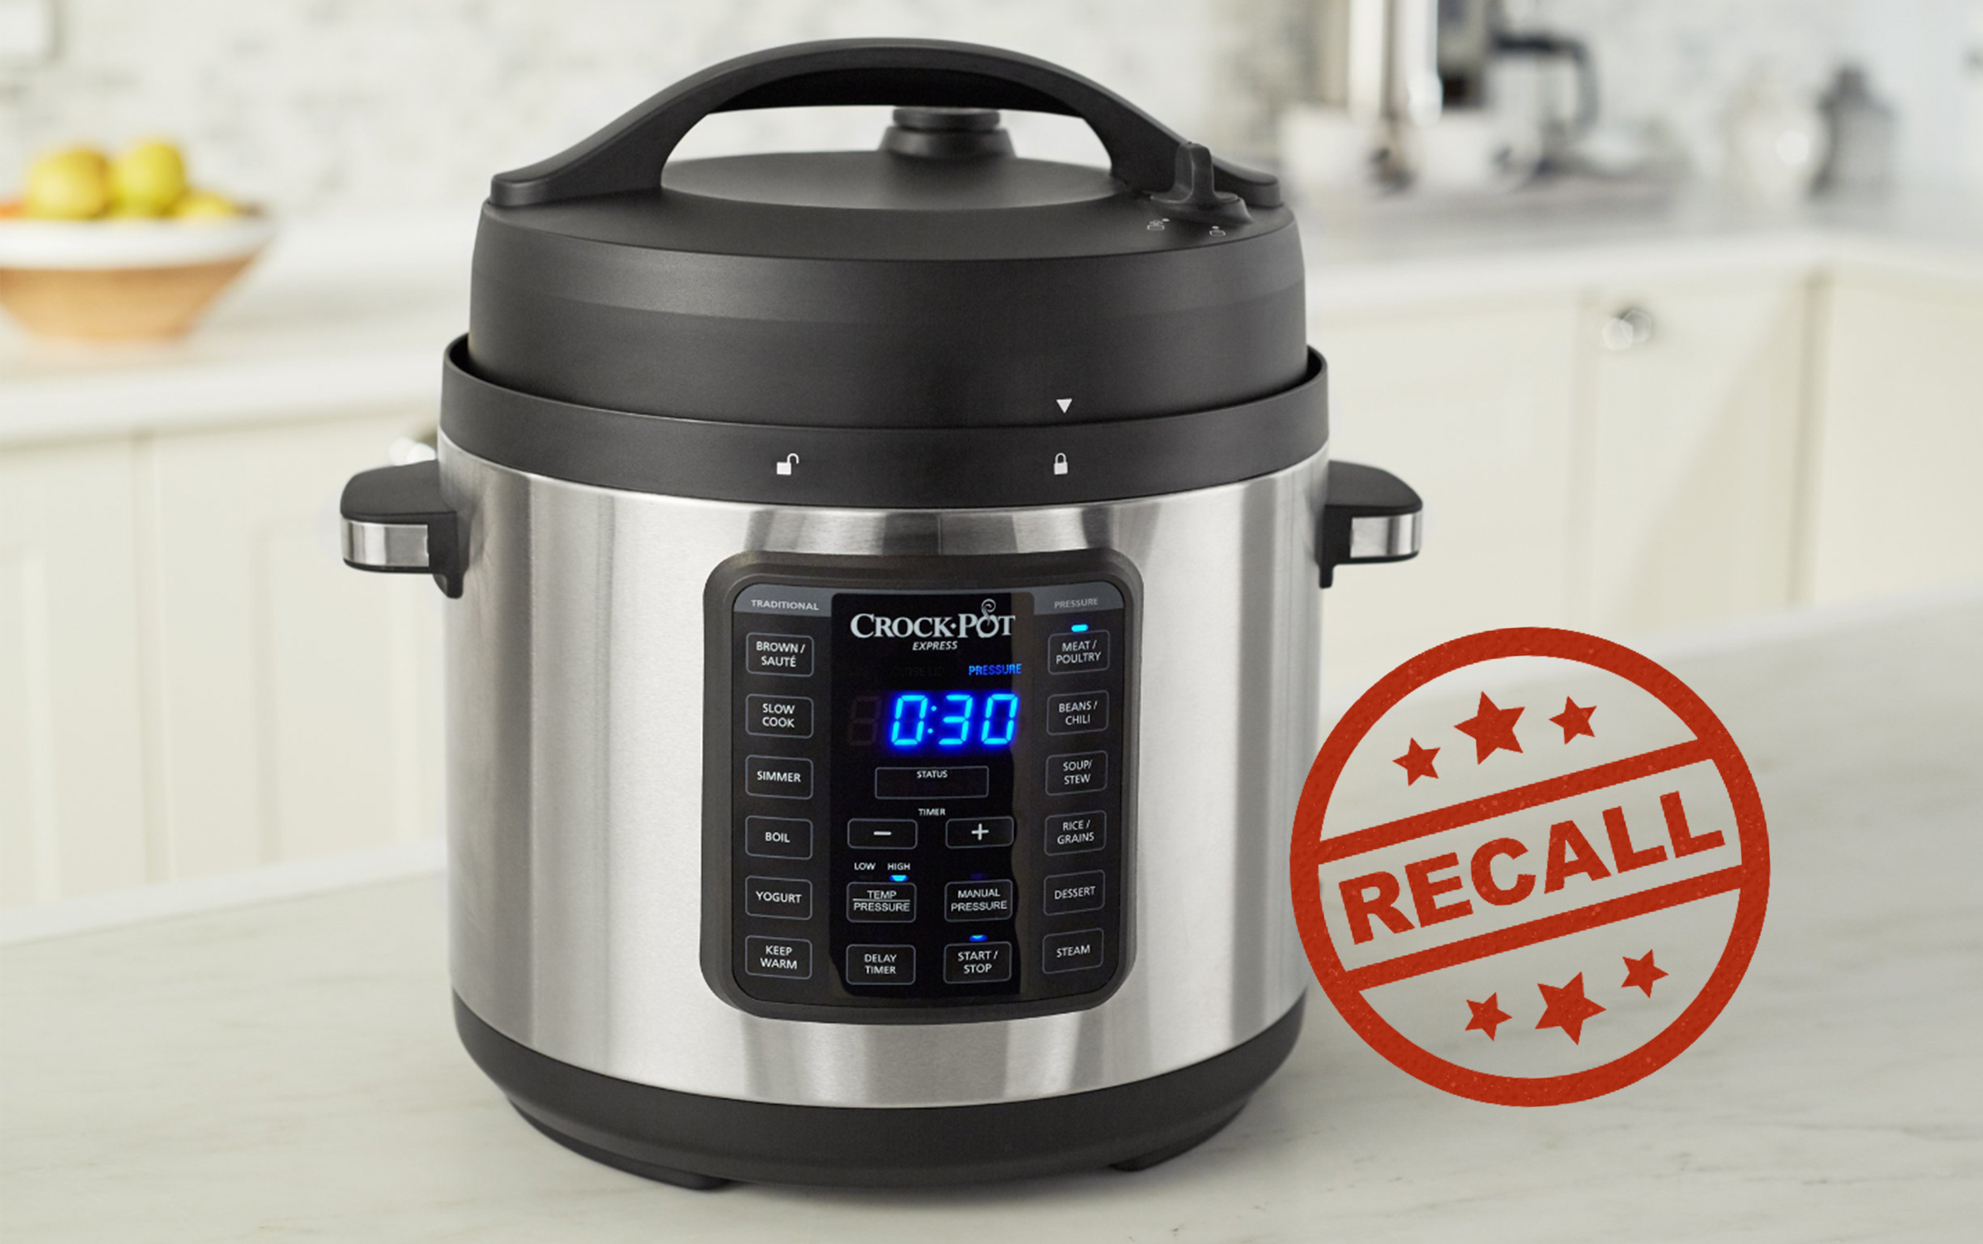 Crockpot on a kitchen counter with a red RECALL stamp